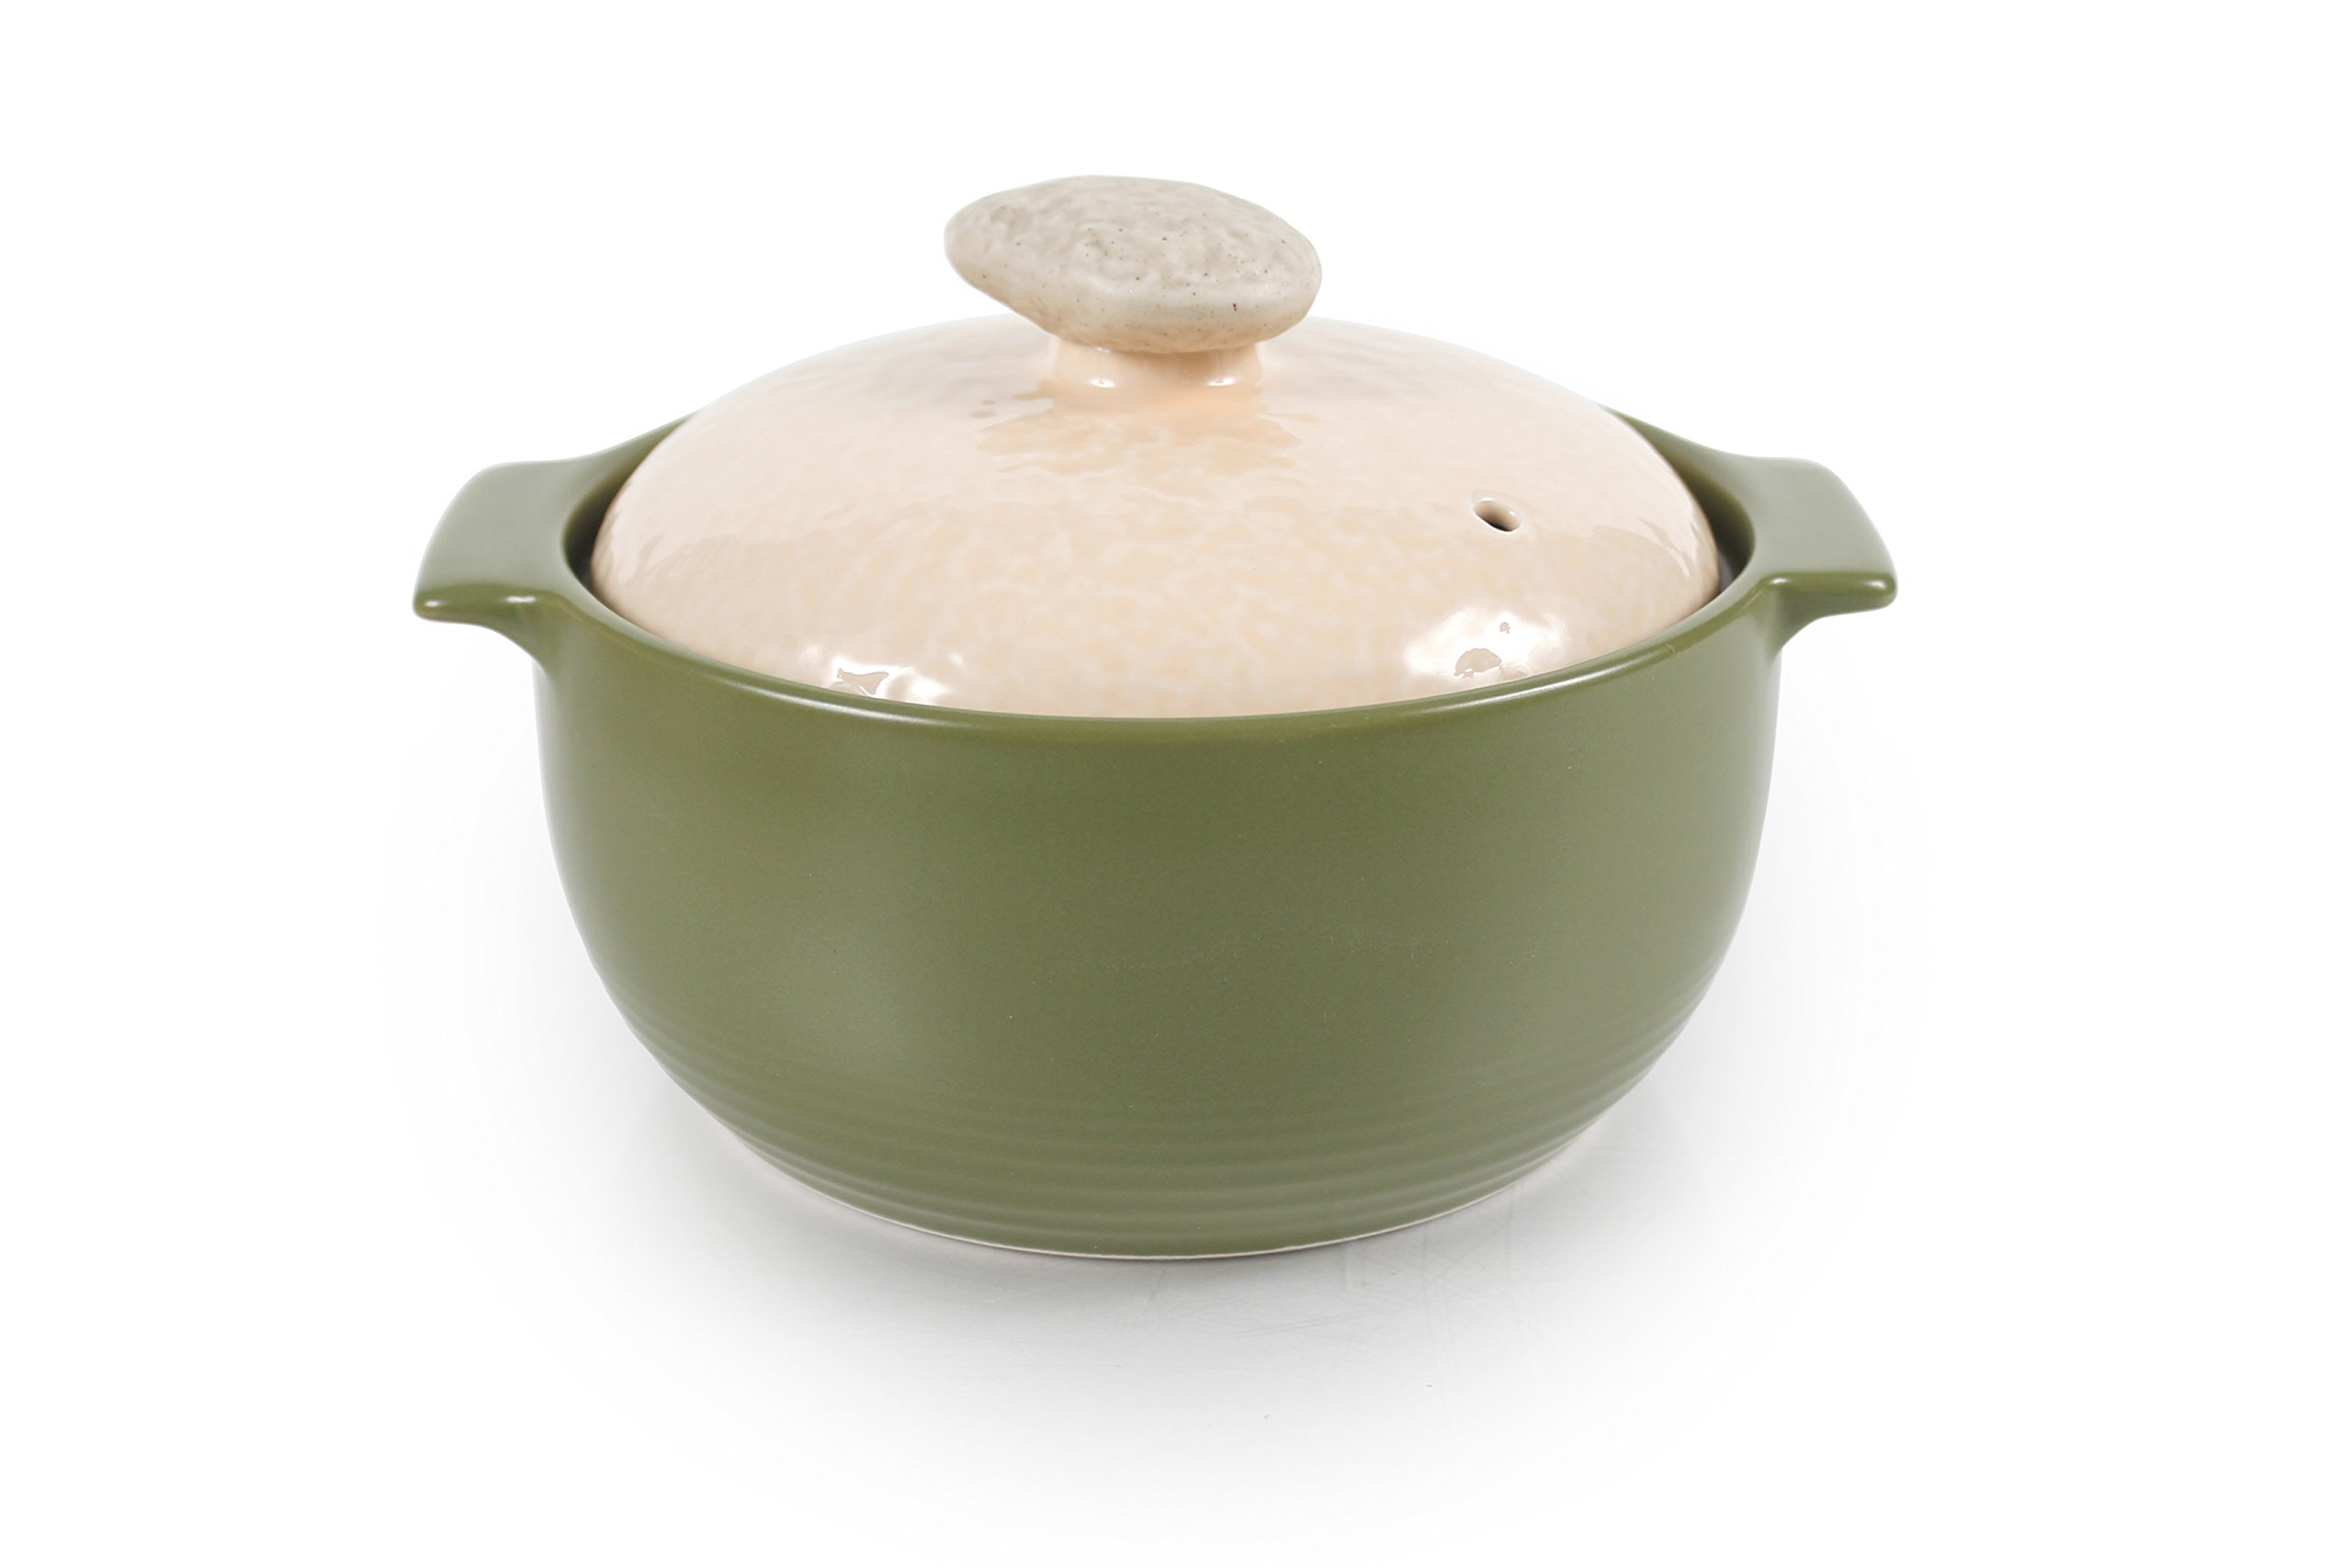 Neoflam Kiesel 1QT Stovetop Ceramic Cookware, Lime Green